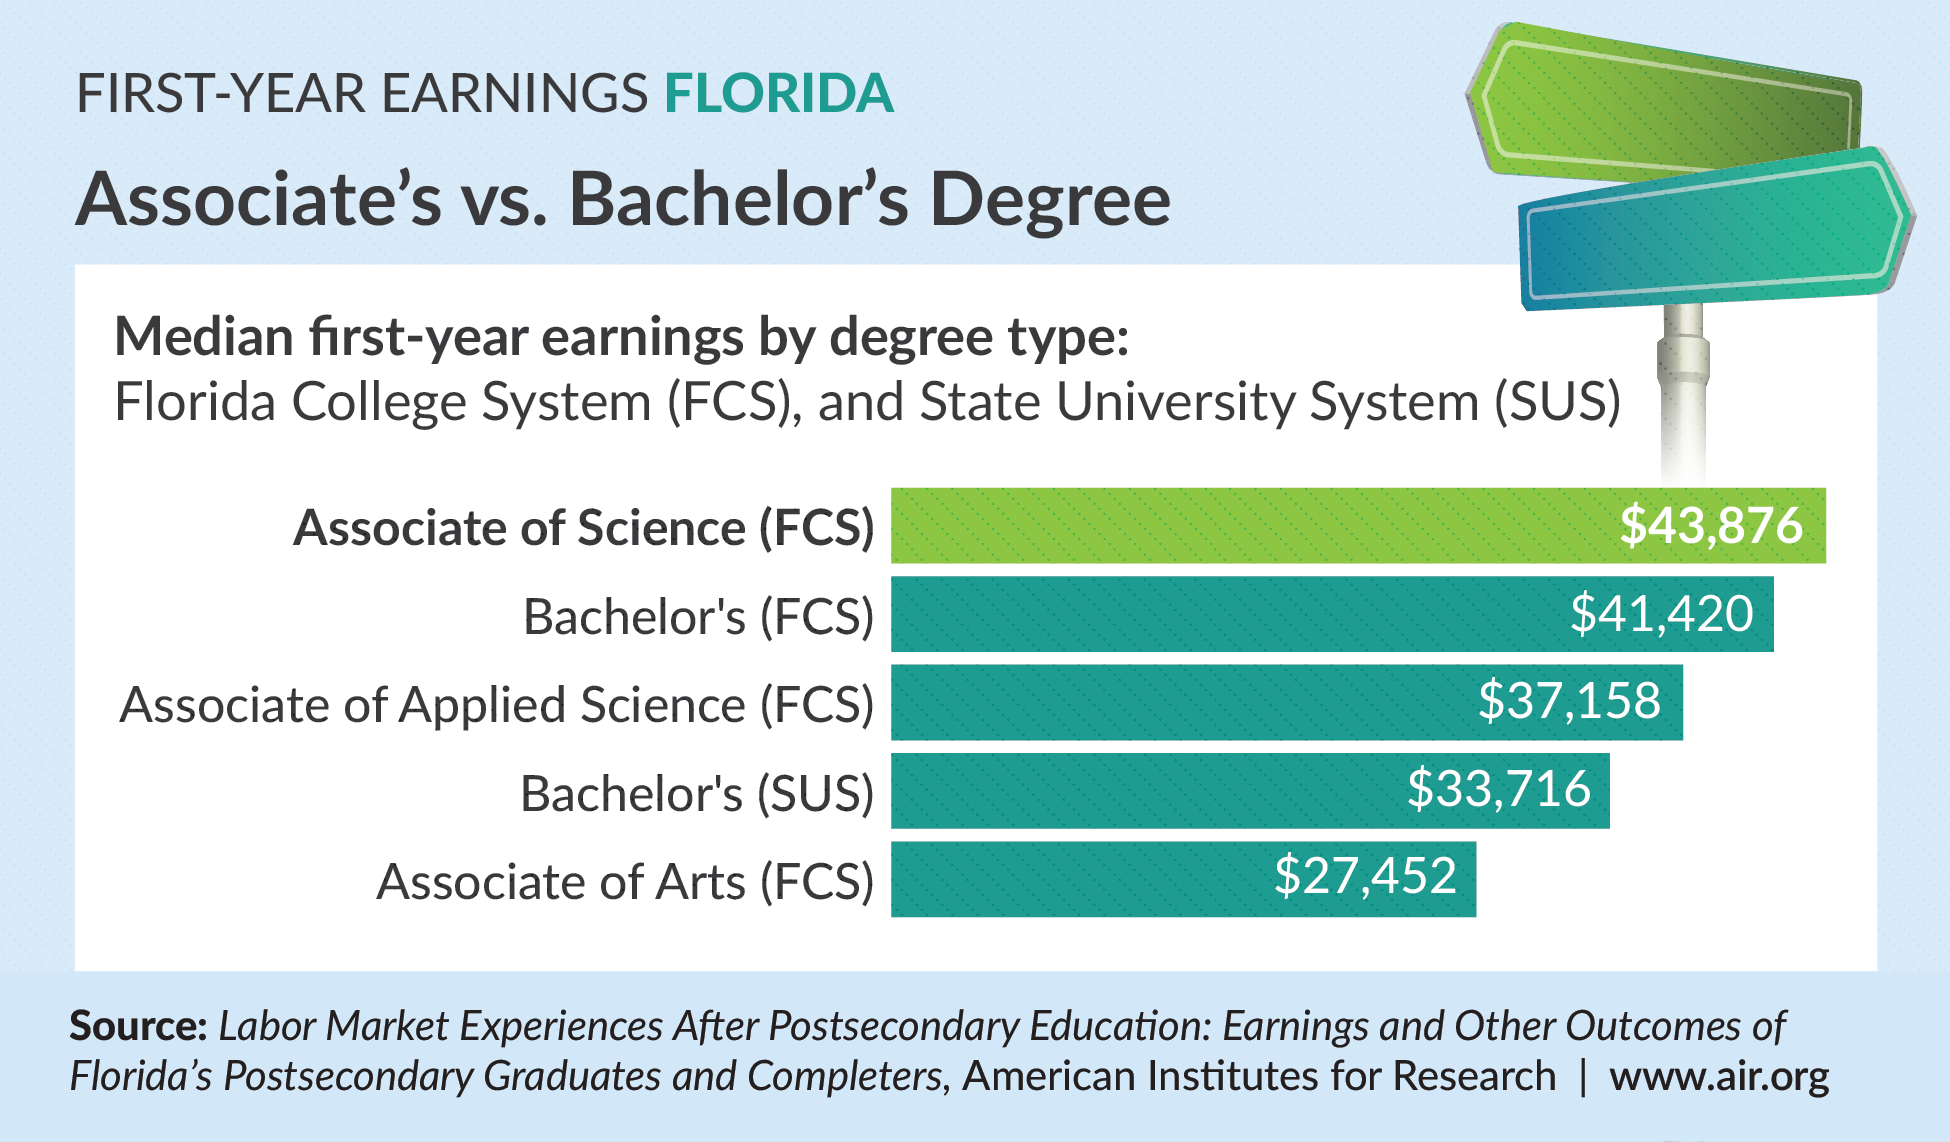 Florida First Year Earnings: Associate's versus Bachelor's degree. Infographic compares first year earnings by degree type.